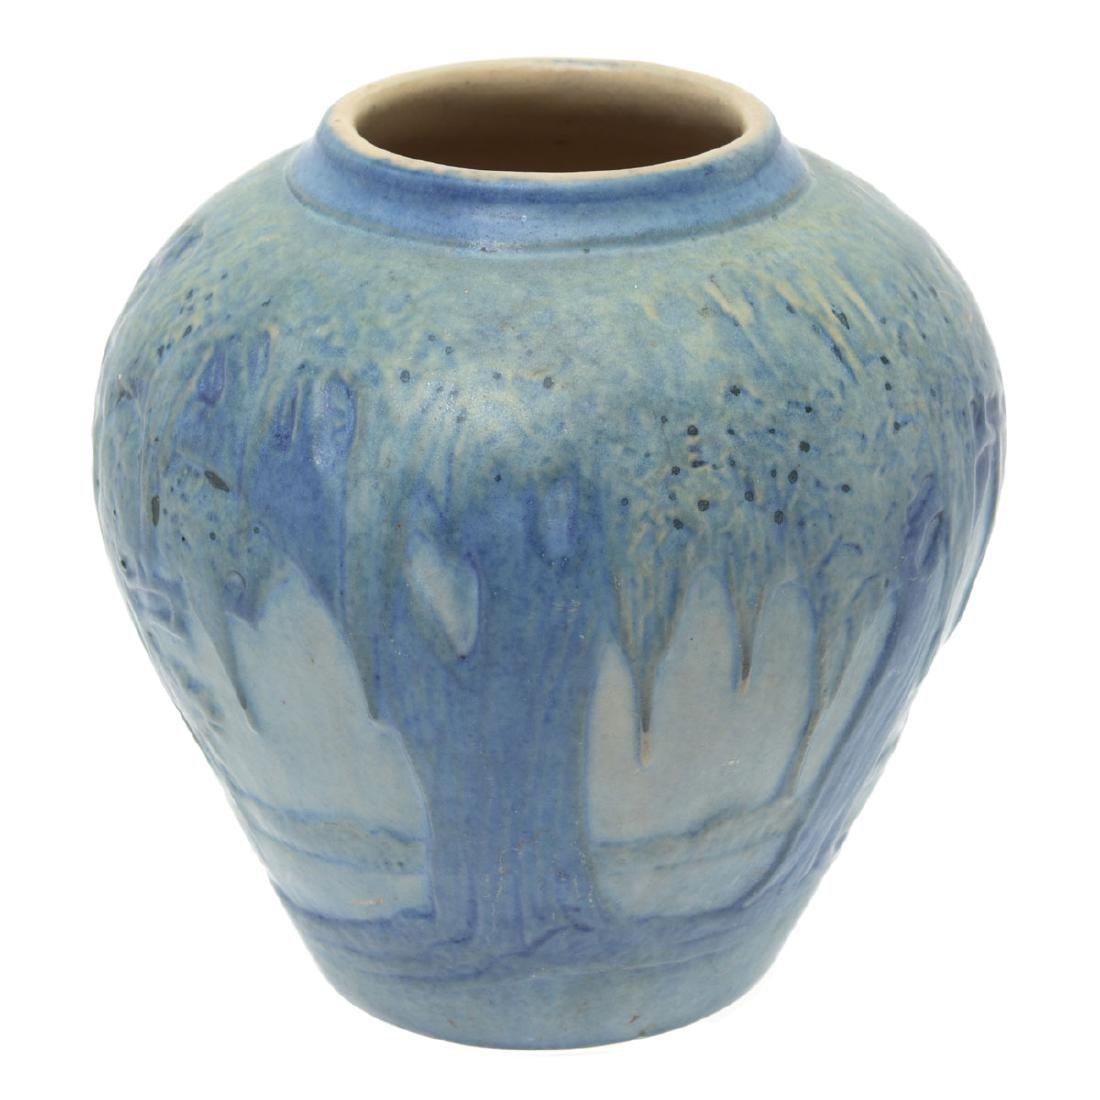 Newcomb College Moonlight Pottery Vase Possibly (JH